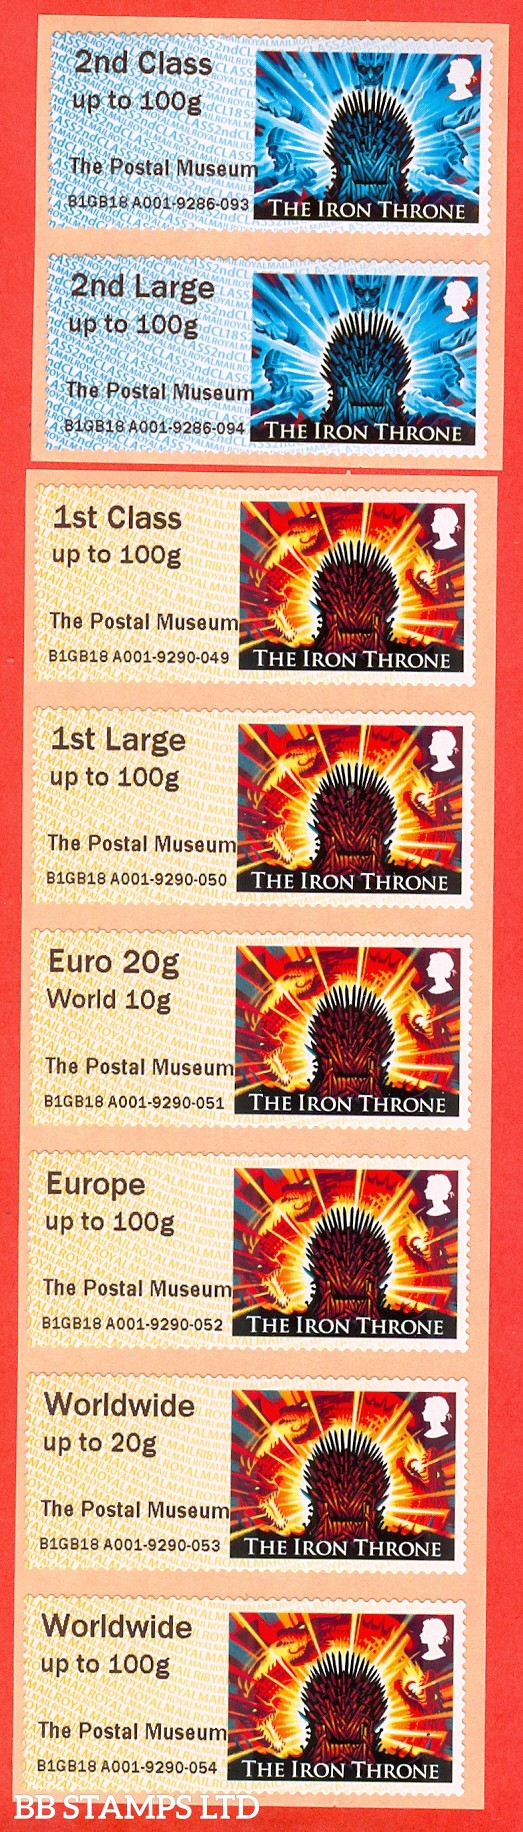 2018 Game Of Thrones - The Iron Throne: The Postal Museum 2nd - Worldwide 100g (set of 8) Type IIIA R18/CL18